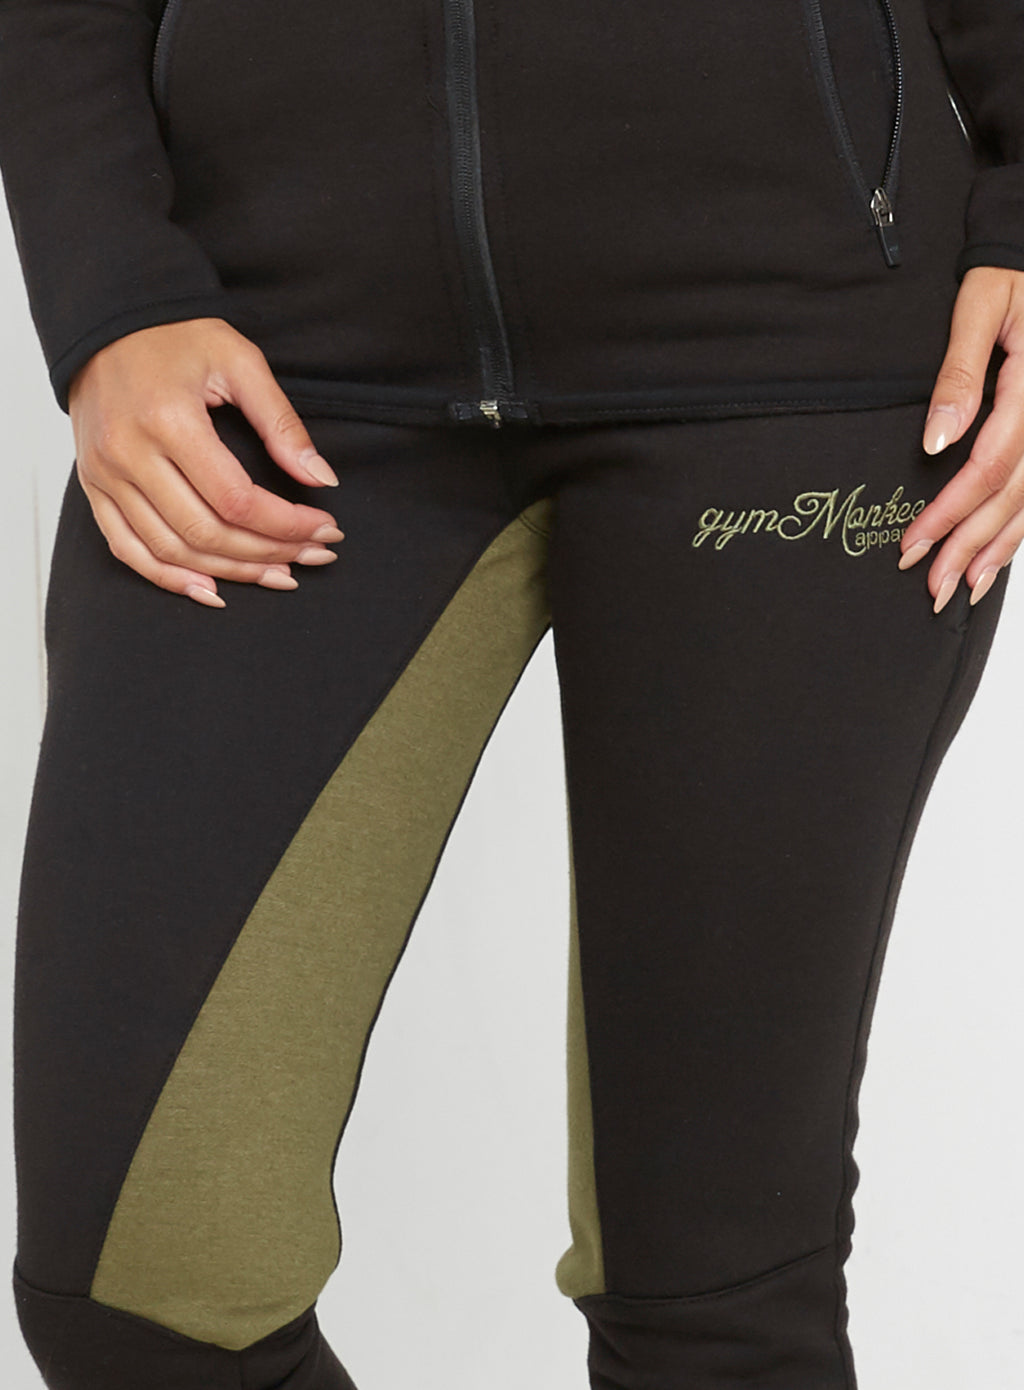 Gym Monkee - Ladies Black and Khaki Joggers WAIST